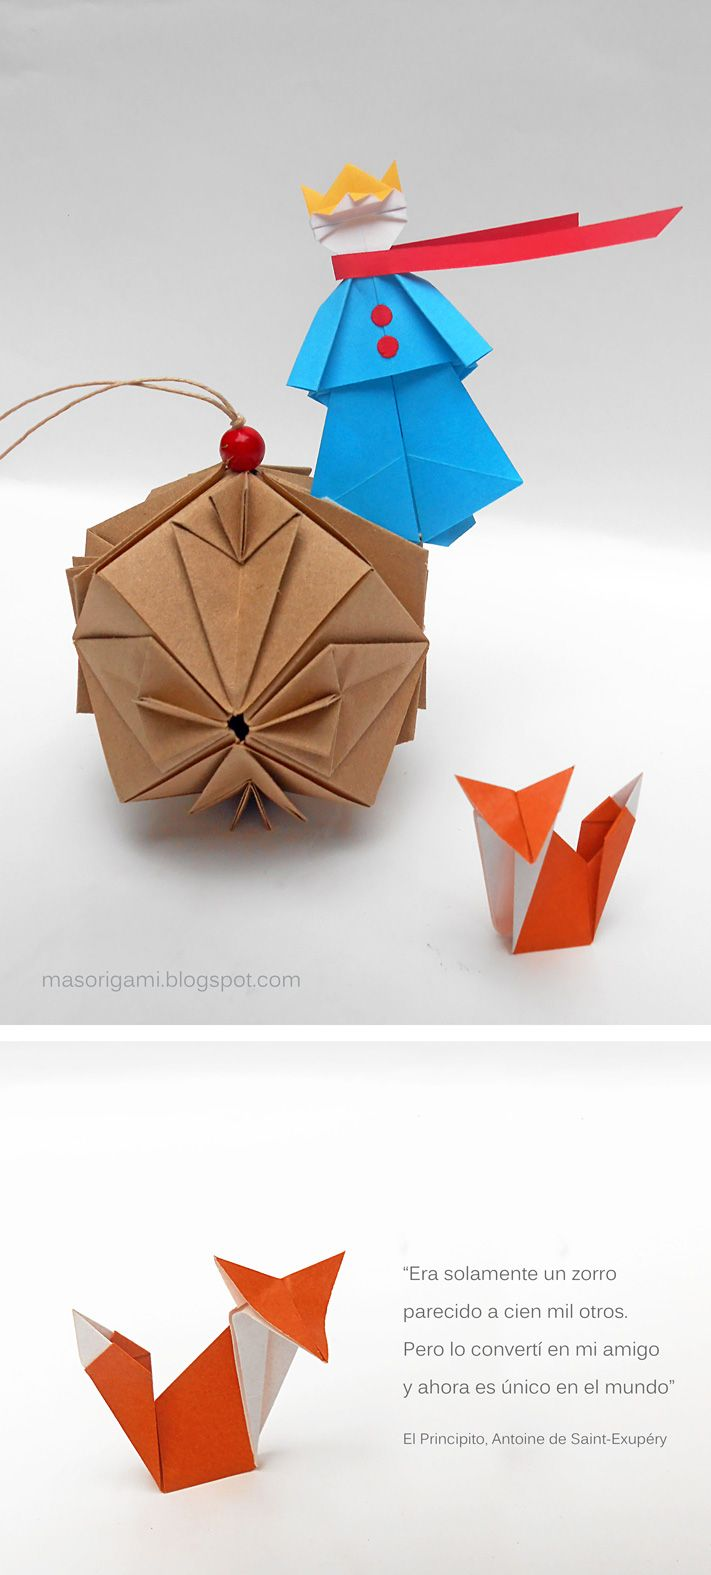 mas origami origami origami pinterest origami origami paper and craft. Black Bedroom Furniture Sets. Home Design Ideas